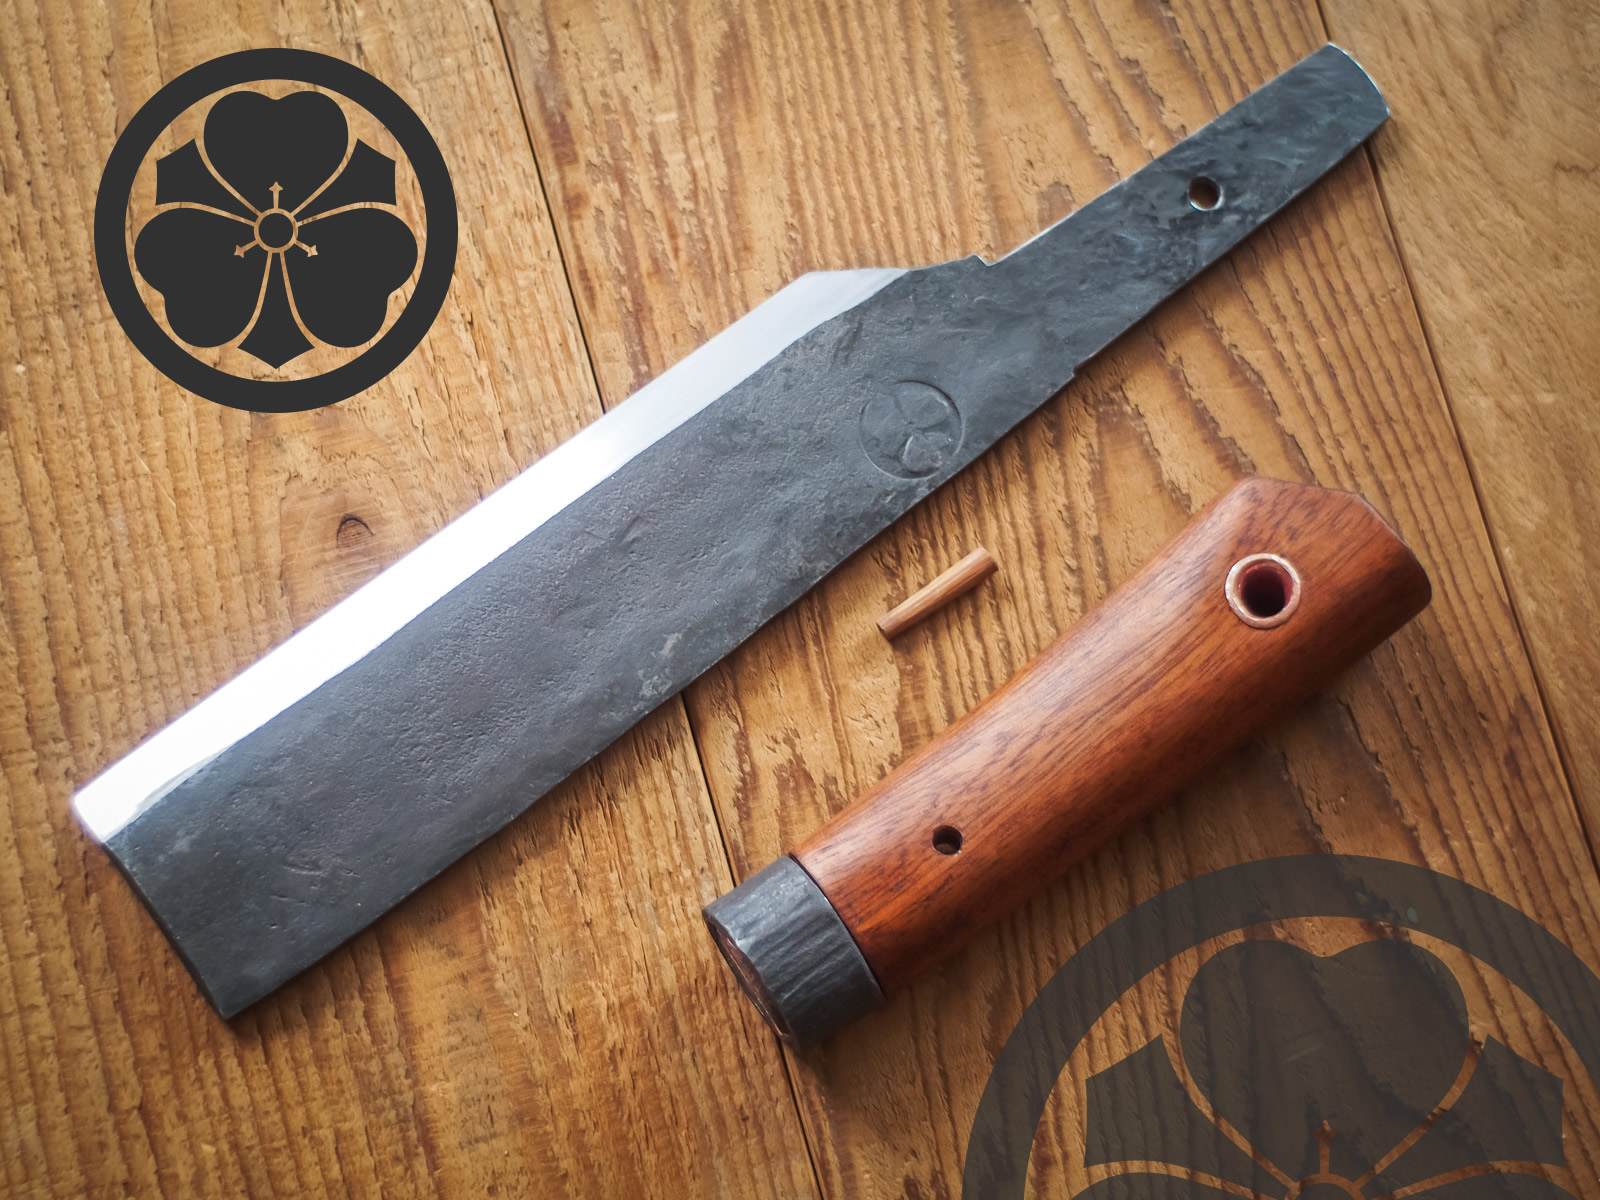 Island Blacksmith: Charcoal forged knives made from reclaimed and natural materials using traditional techniques